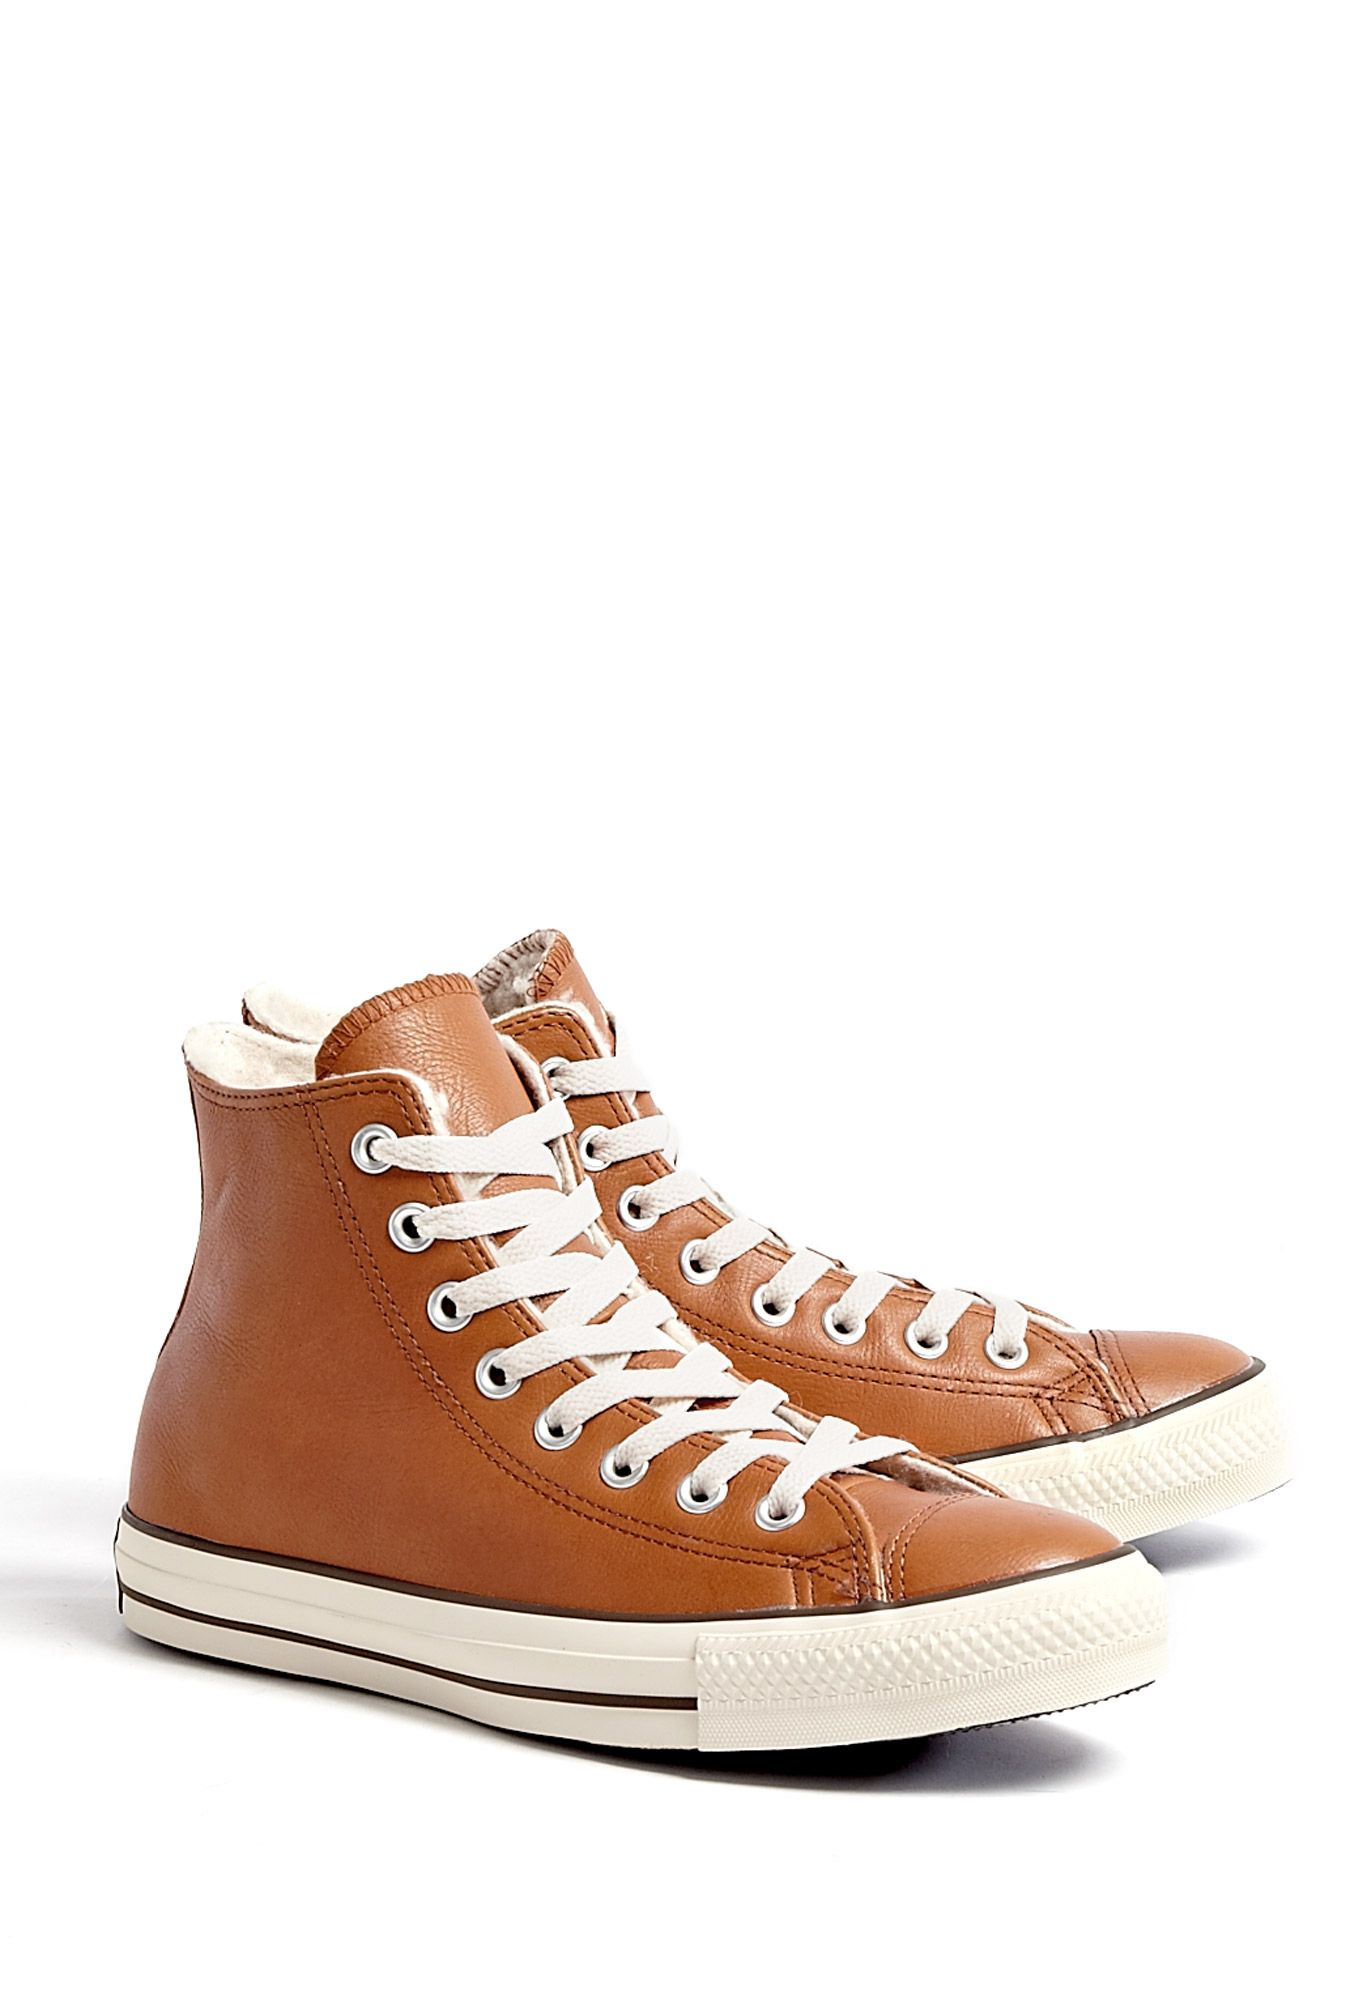 155d9b59d725 Tan Leather Chuck Taylor All Star High Tops by Converse